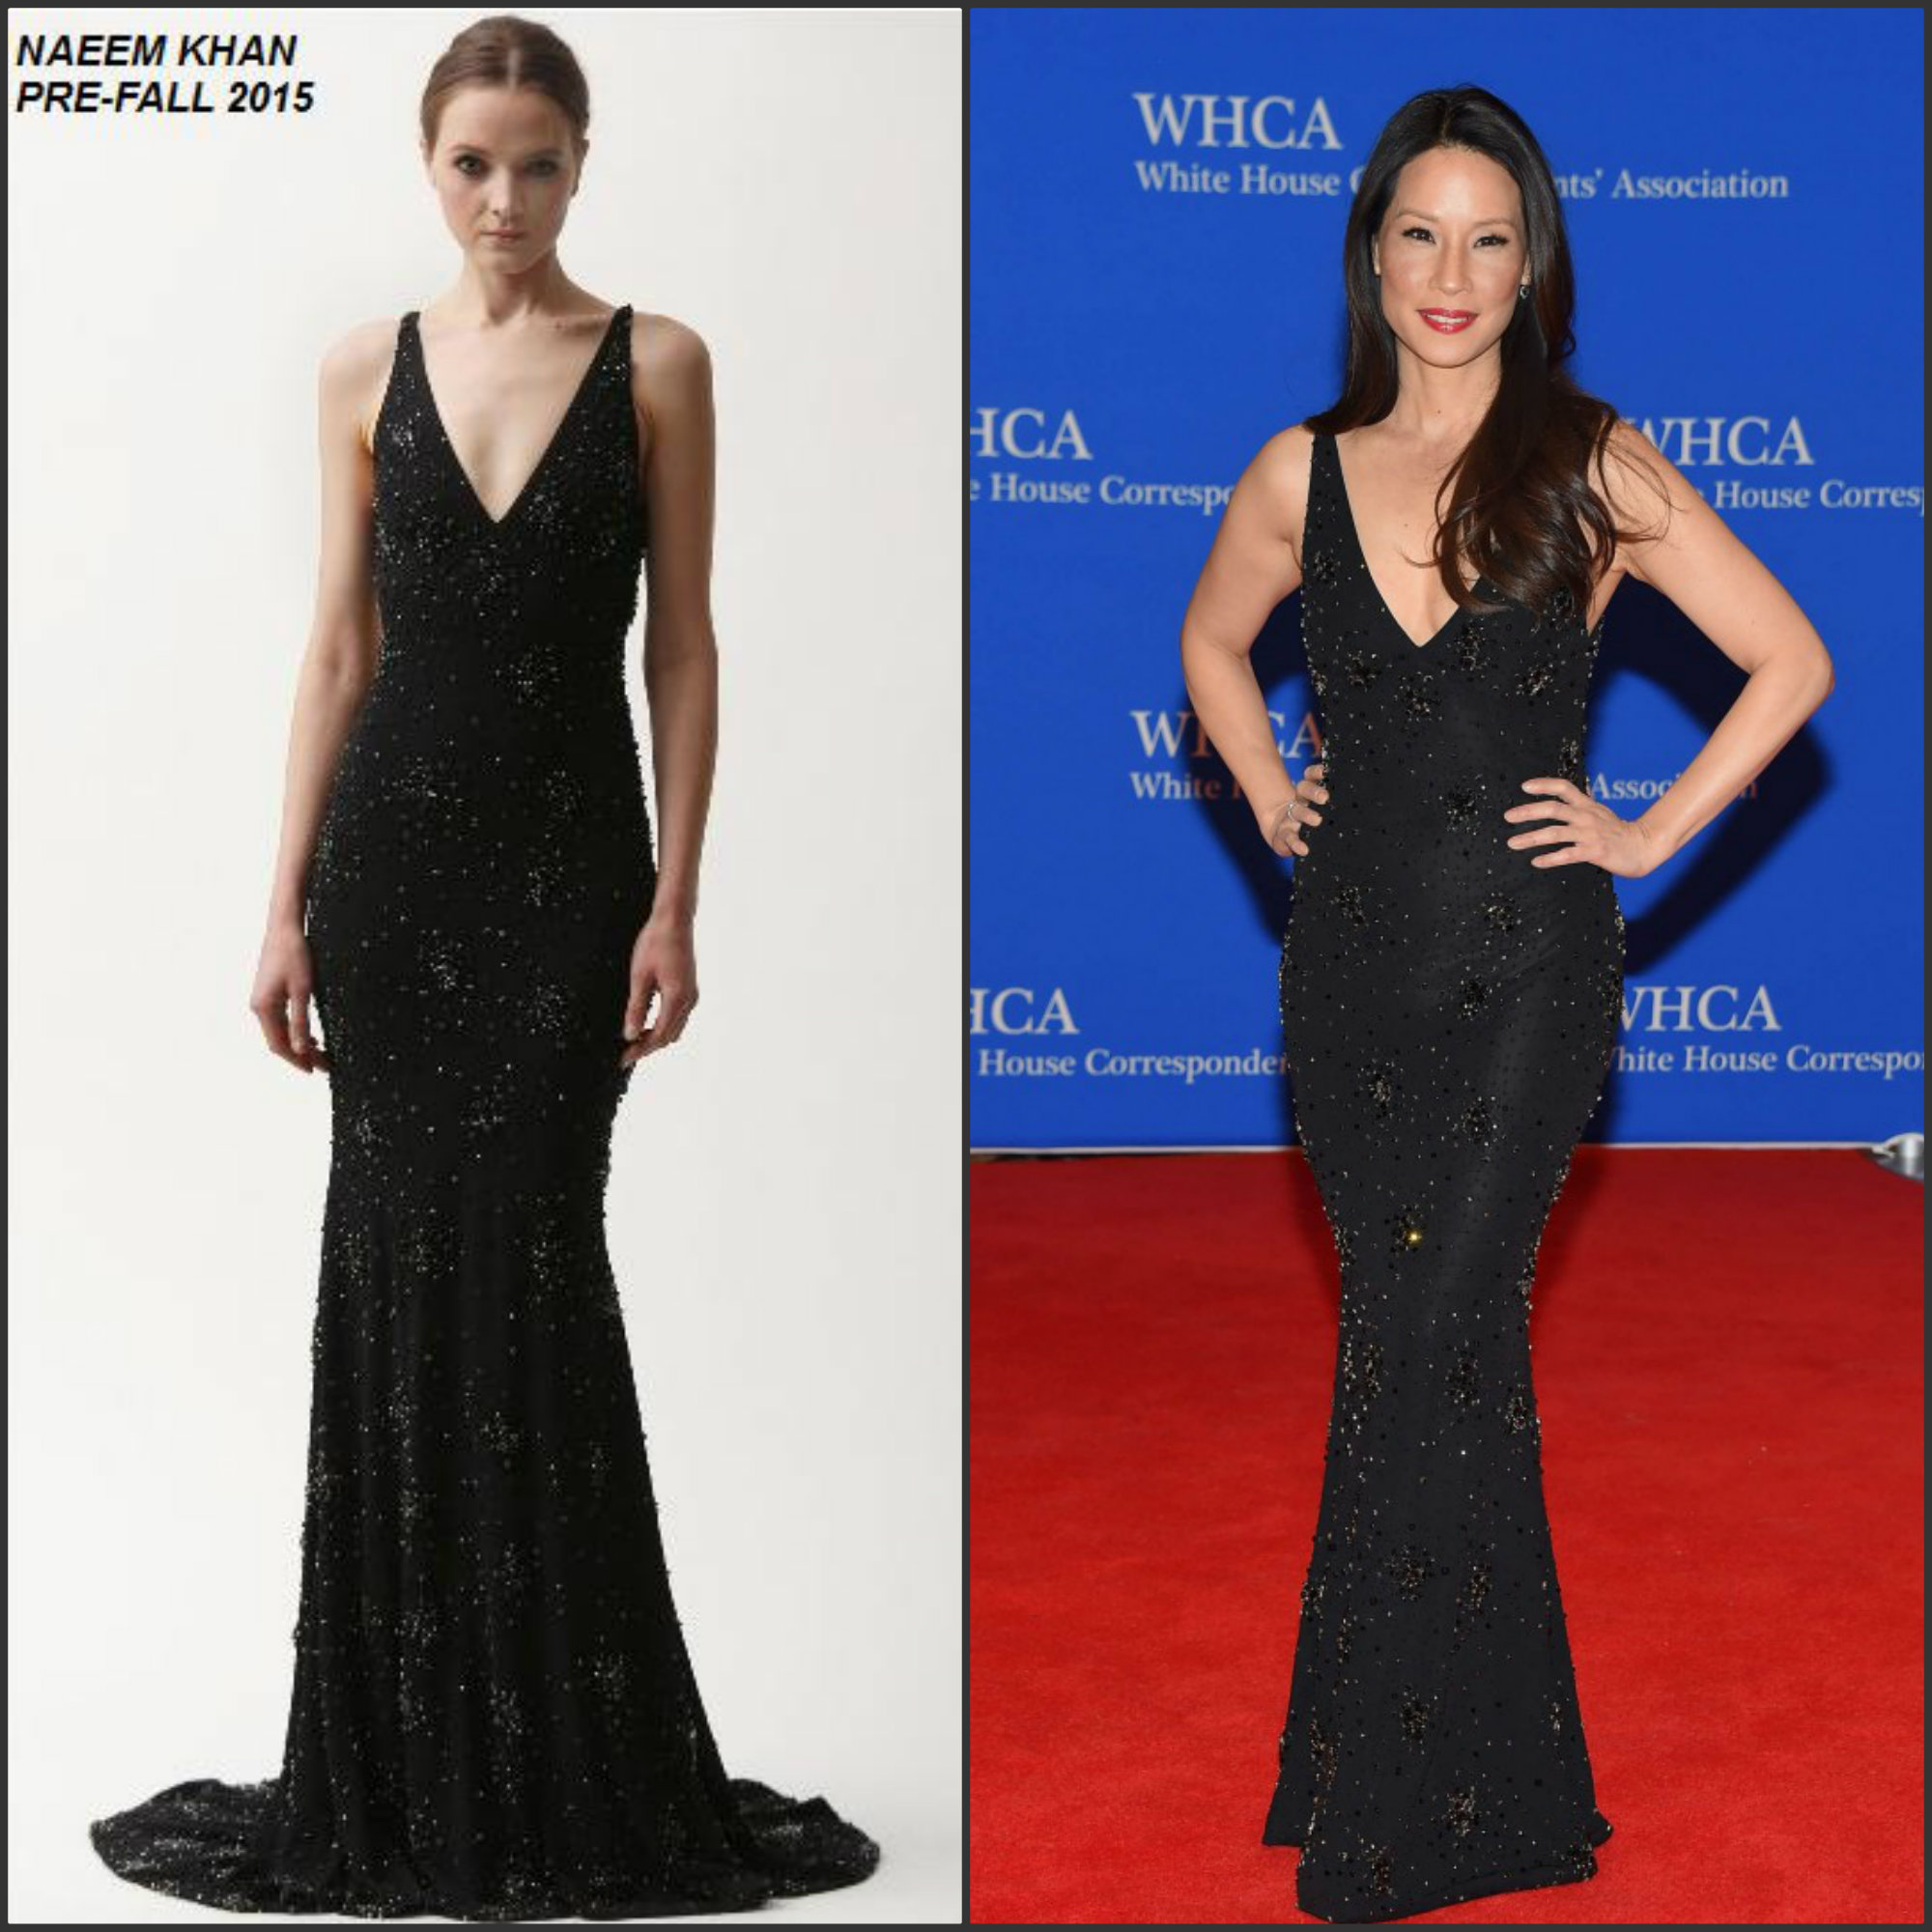 Lucy-Liu-in-Naeem-Khan-at-the-2015-White-House- Correspondents-Association-Dinner